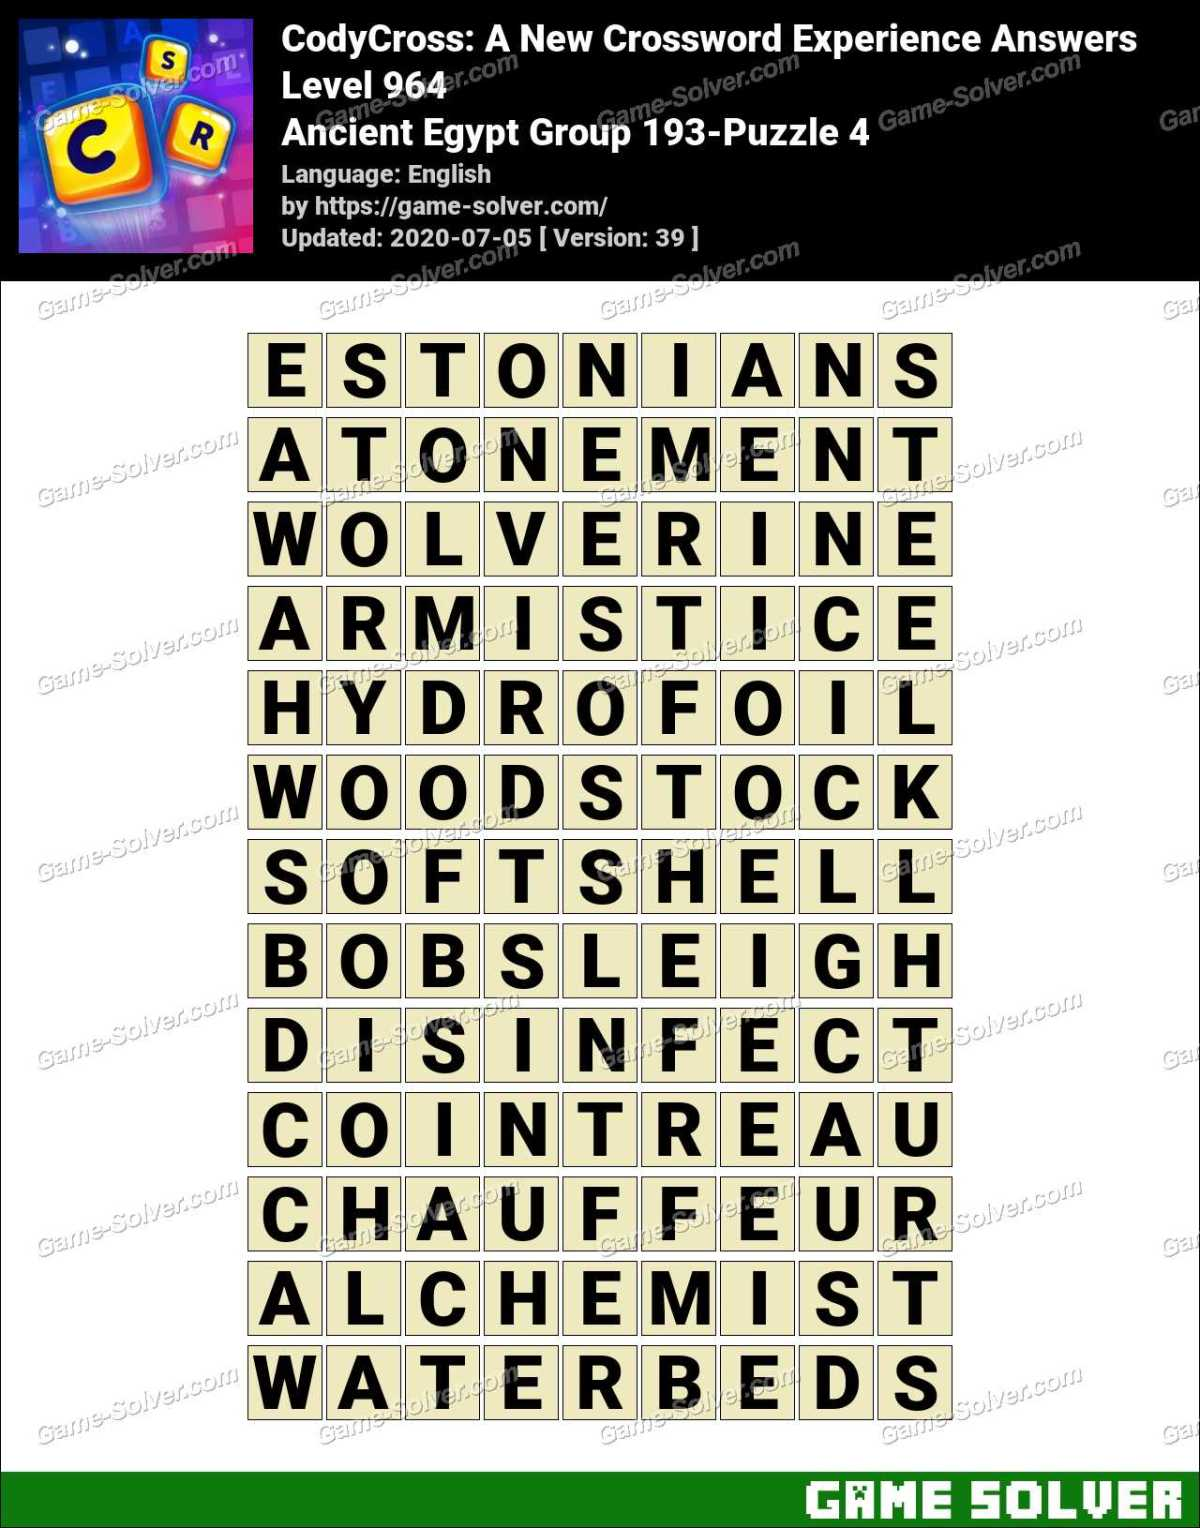 CodyCross Ancient Egypt Group 193-Puzzle 4 Answers